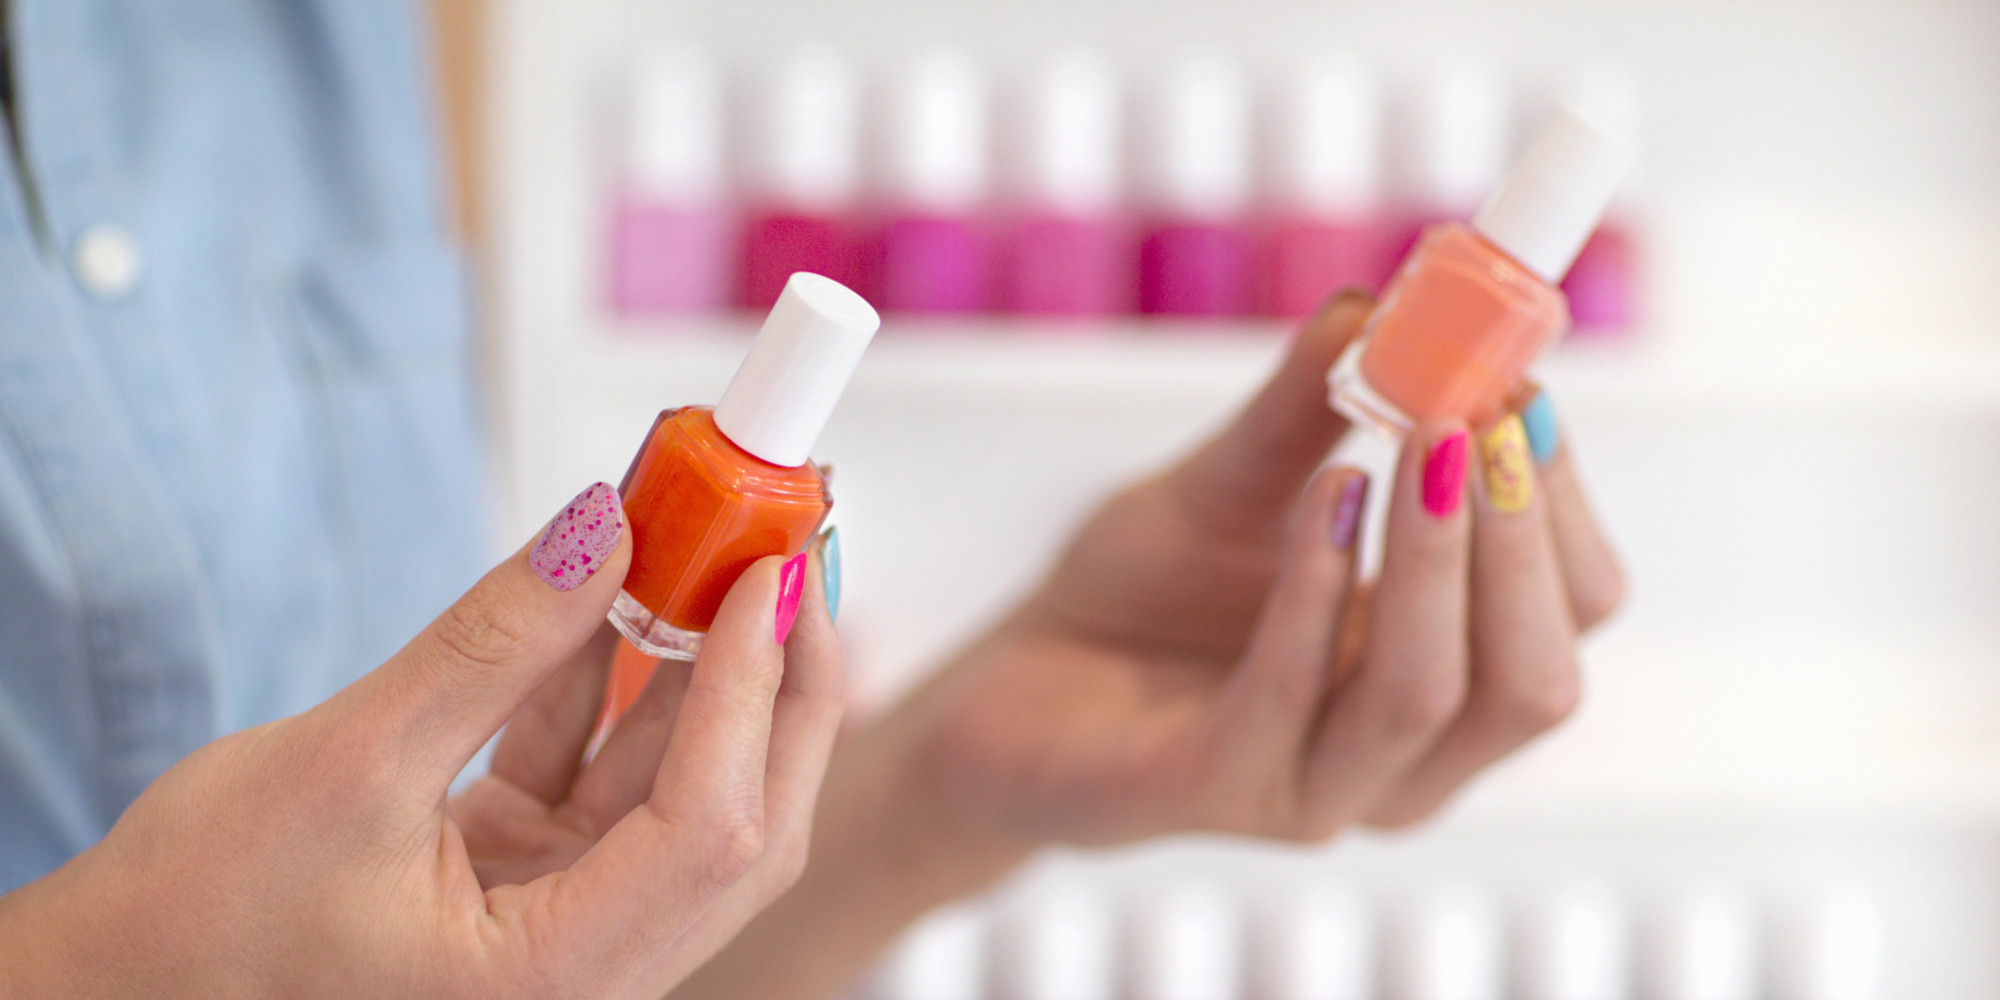 What Your Nail Polish Color Says About Your Personality | HuffPost